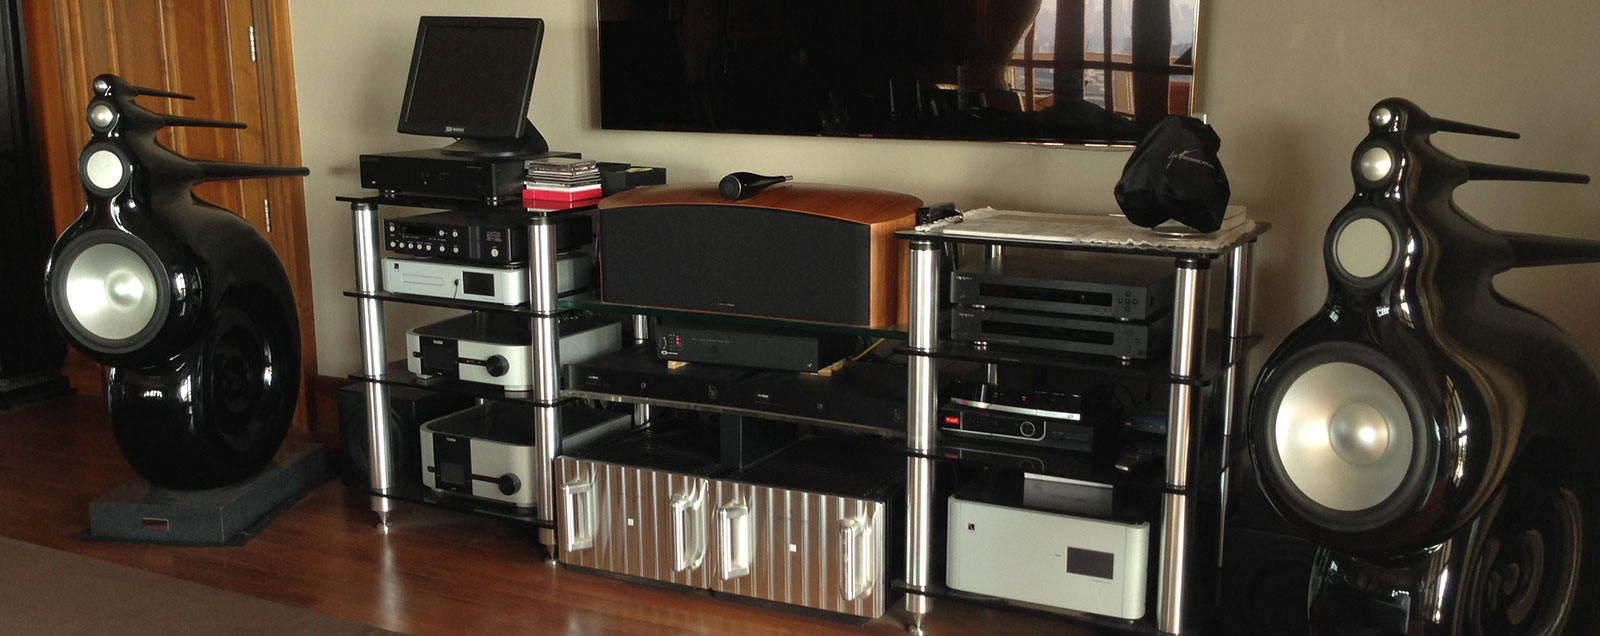 Home Theatre installation in Mumbai